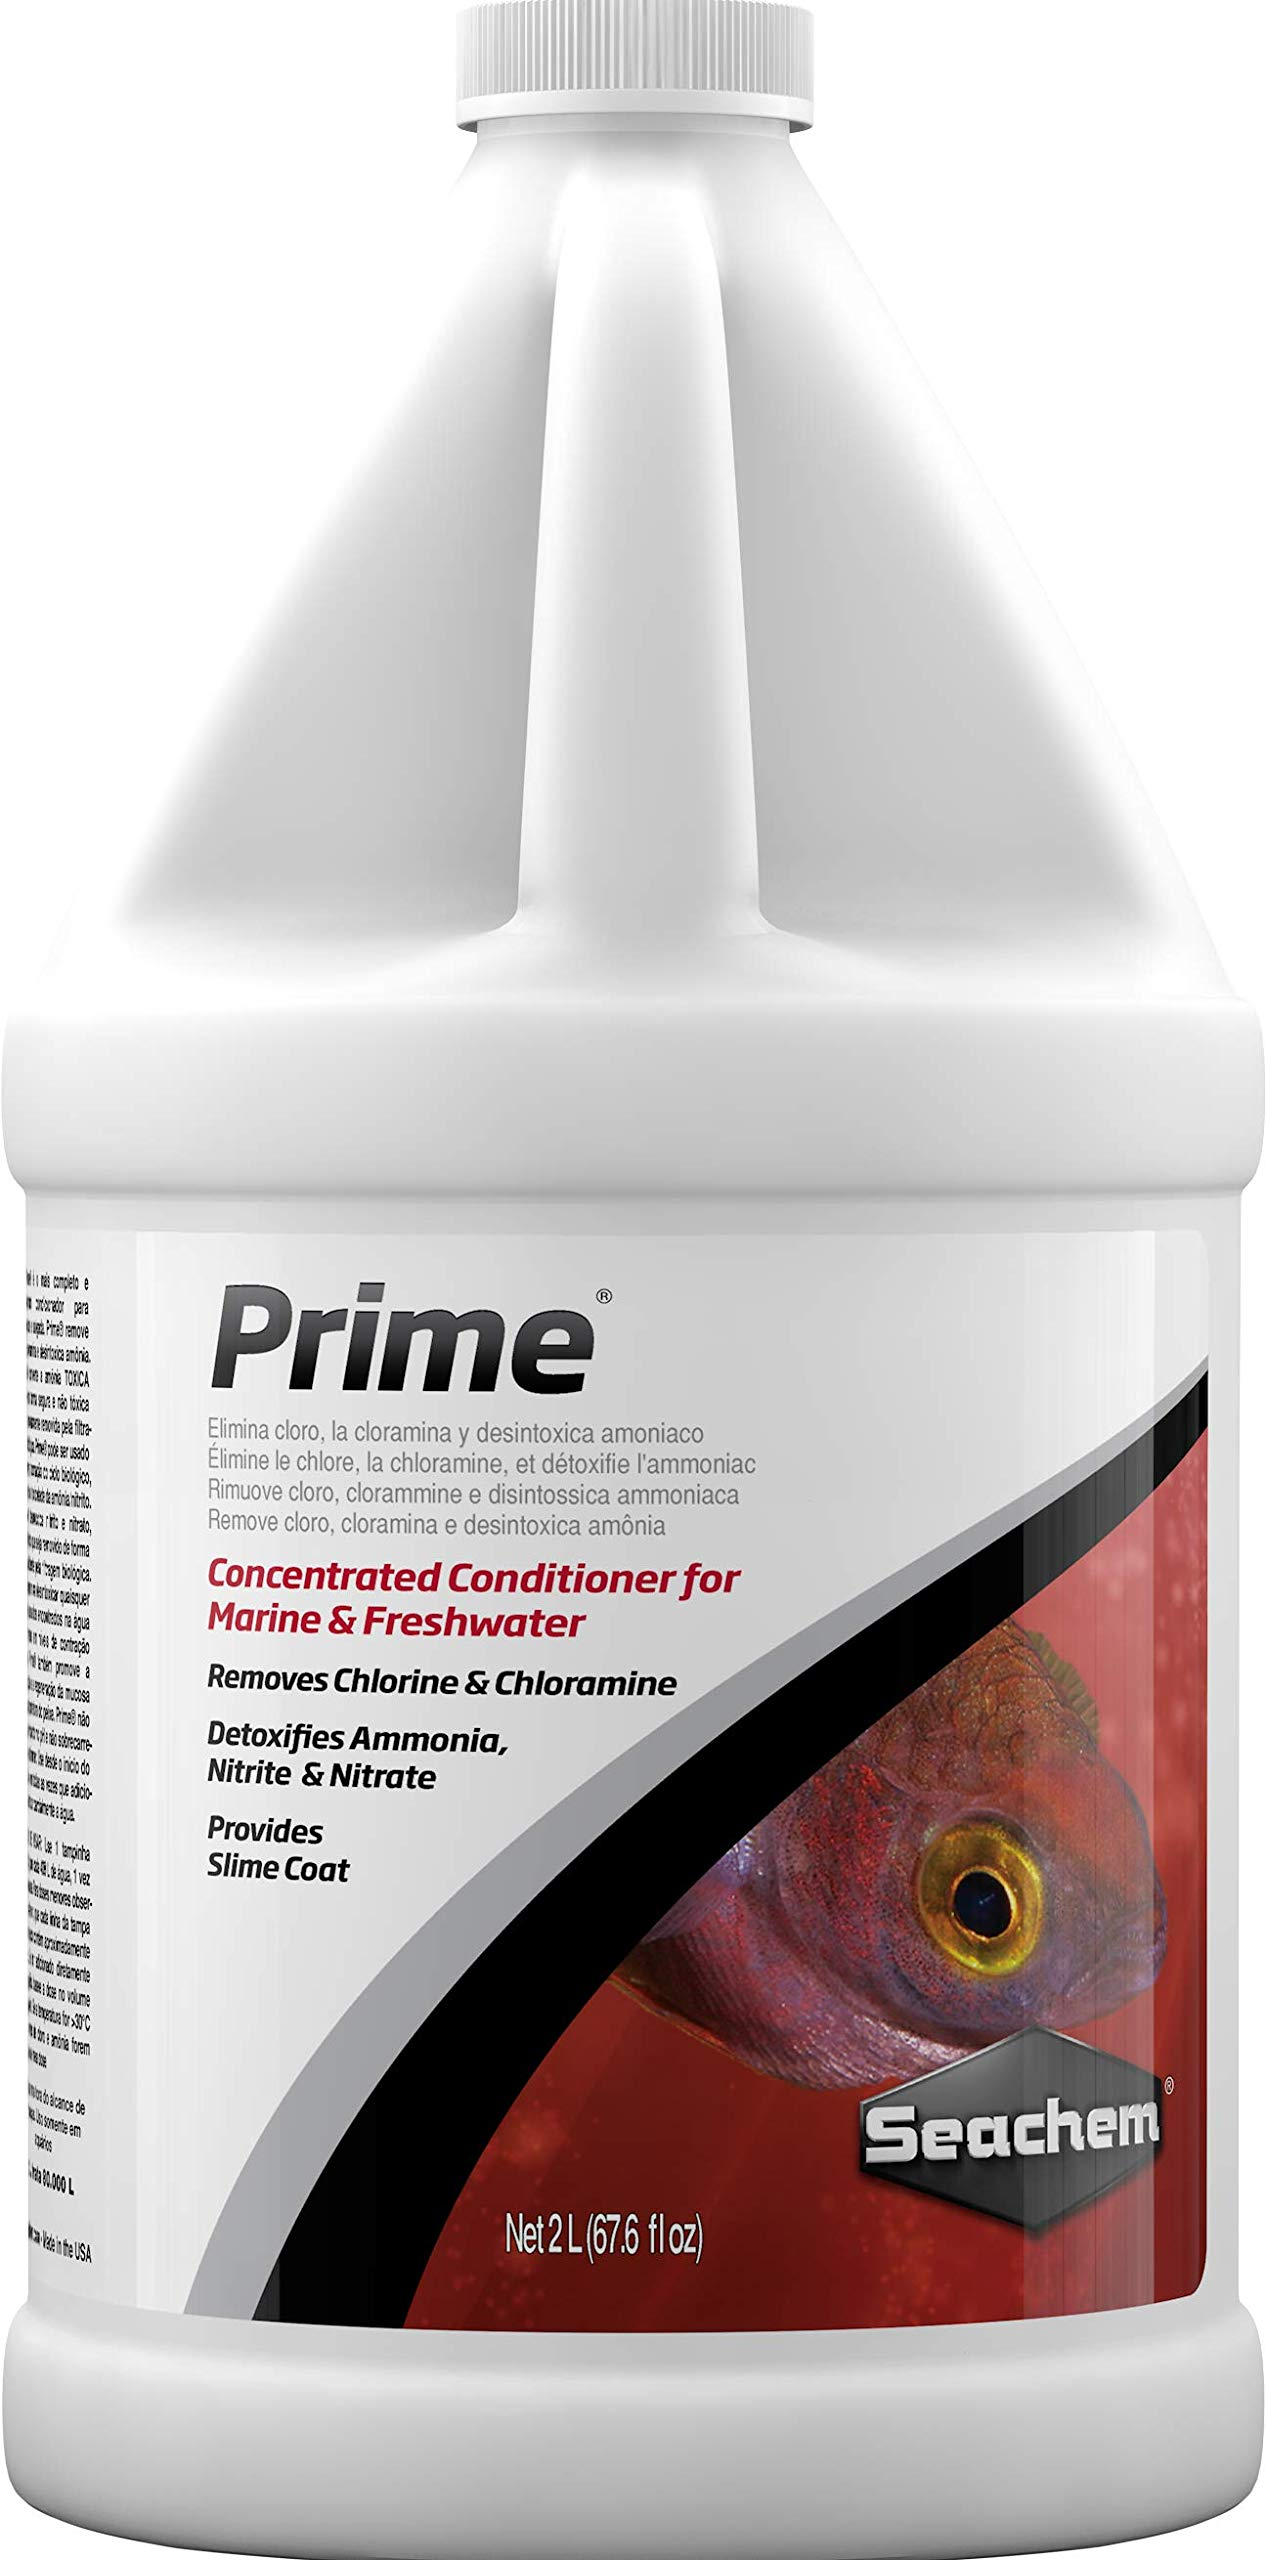 Seachem Prime Fresh and Saltwater Conditioner - Chemical Remover and Detoxifier 2 L by Seachem